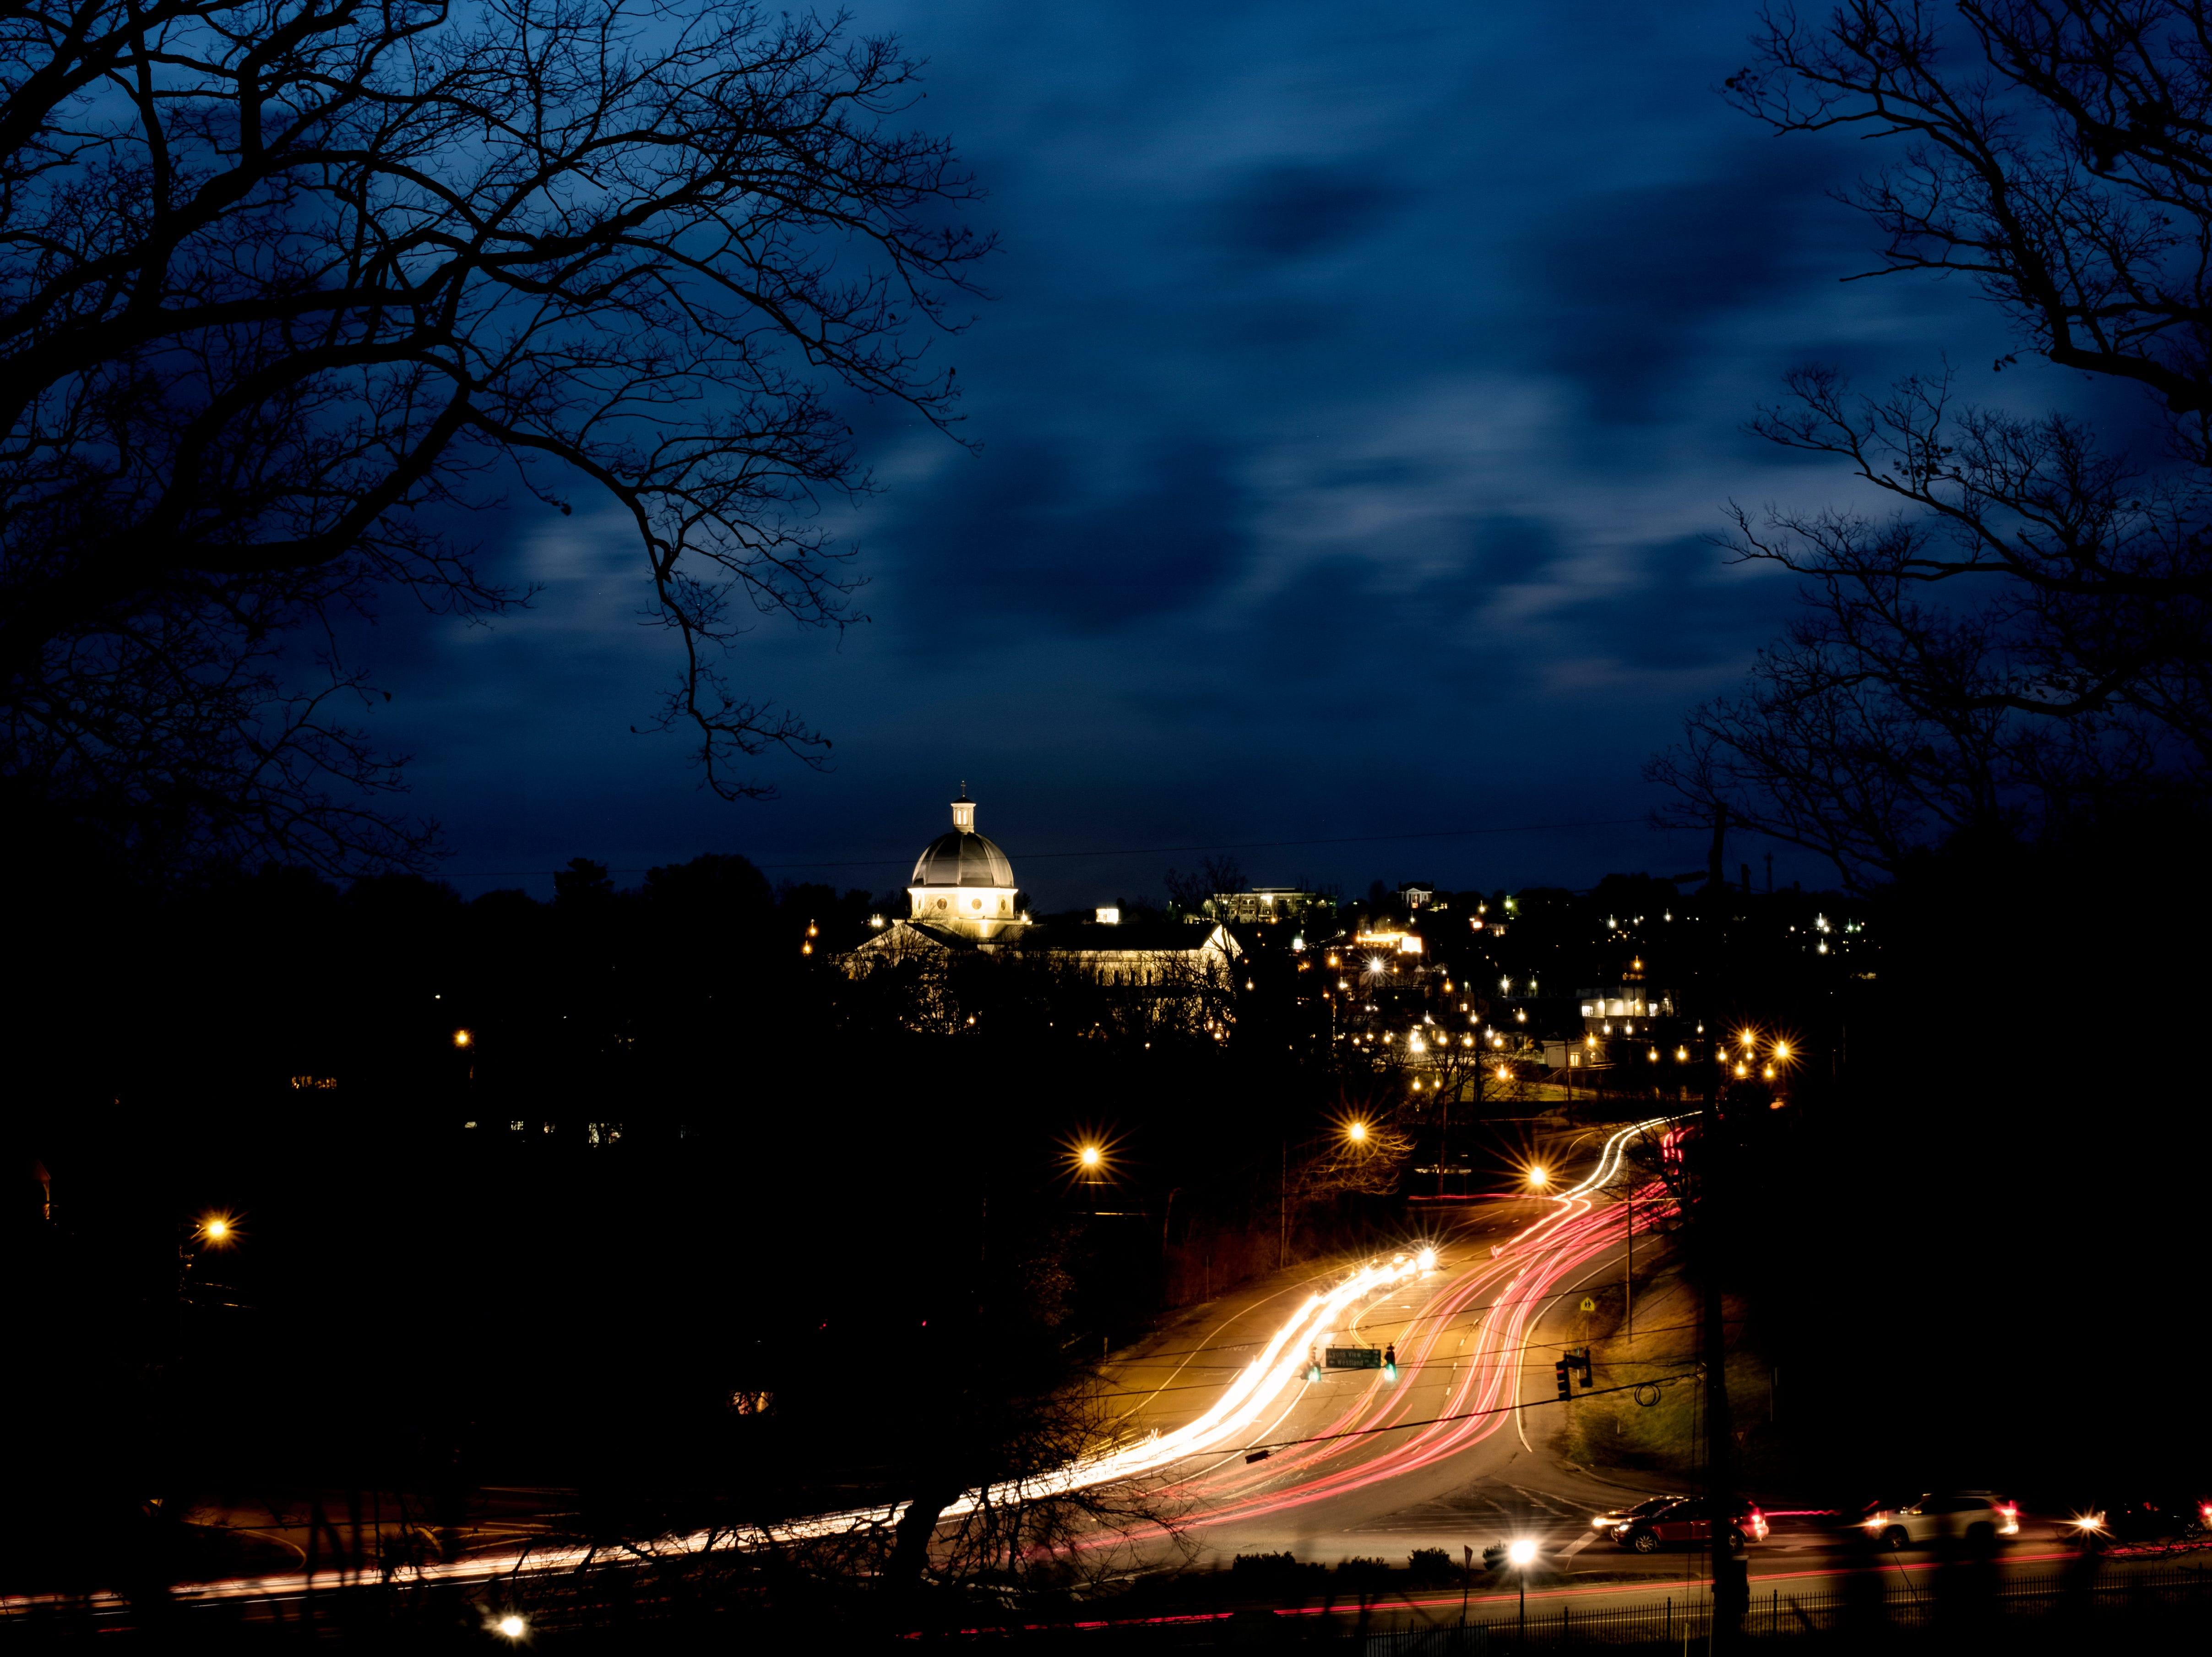 Traffic flows down Northshore Drive and Lyons View Pike in Knoxville, Tennessee on Thursday, February 7, 2019. The Cathedral of the Most Sacred Heart of Jesus can be seen in the distance.